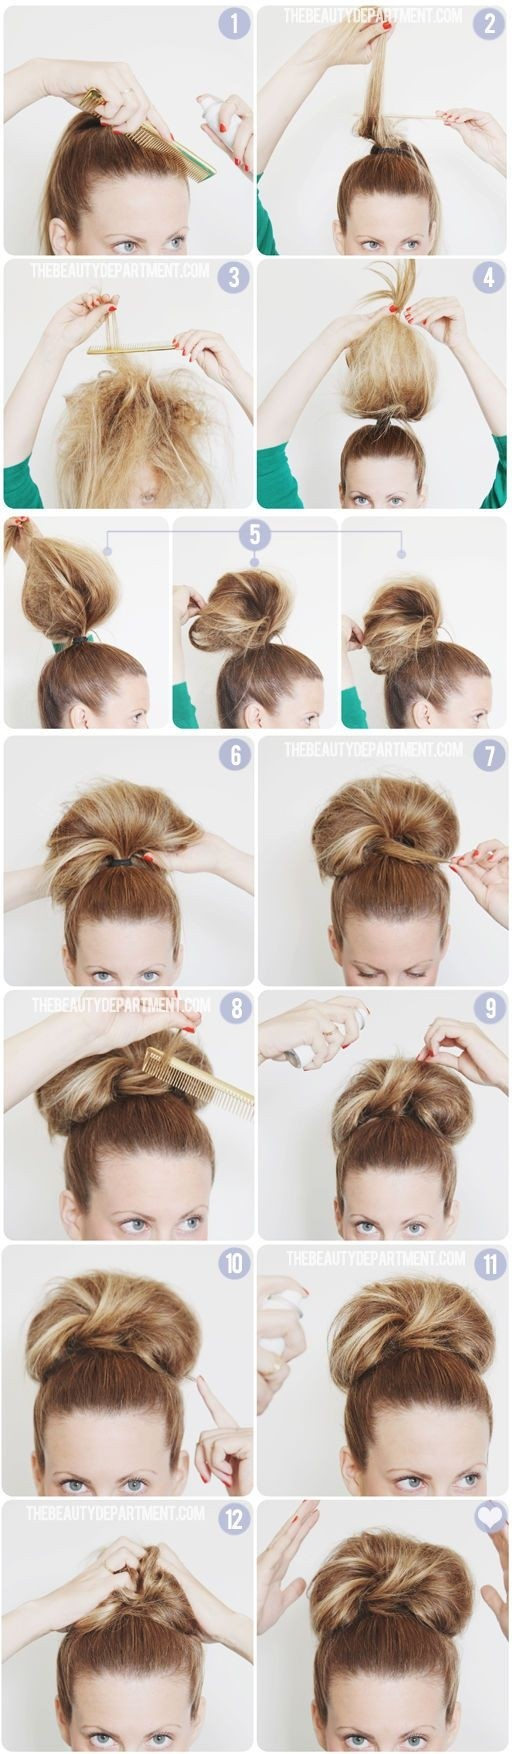 hair bun styles tutorial 10 simple yet stylish updo hairstyle tutorials for all 3490